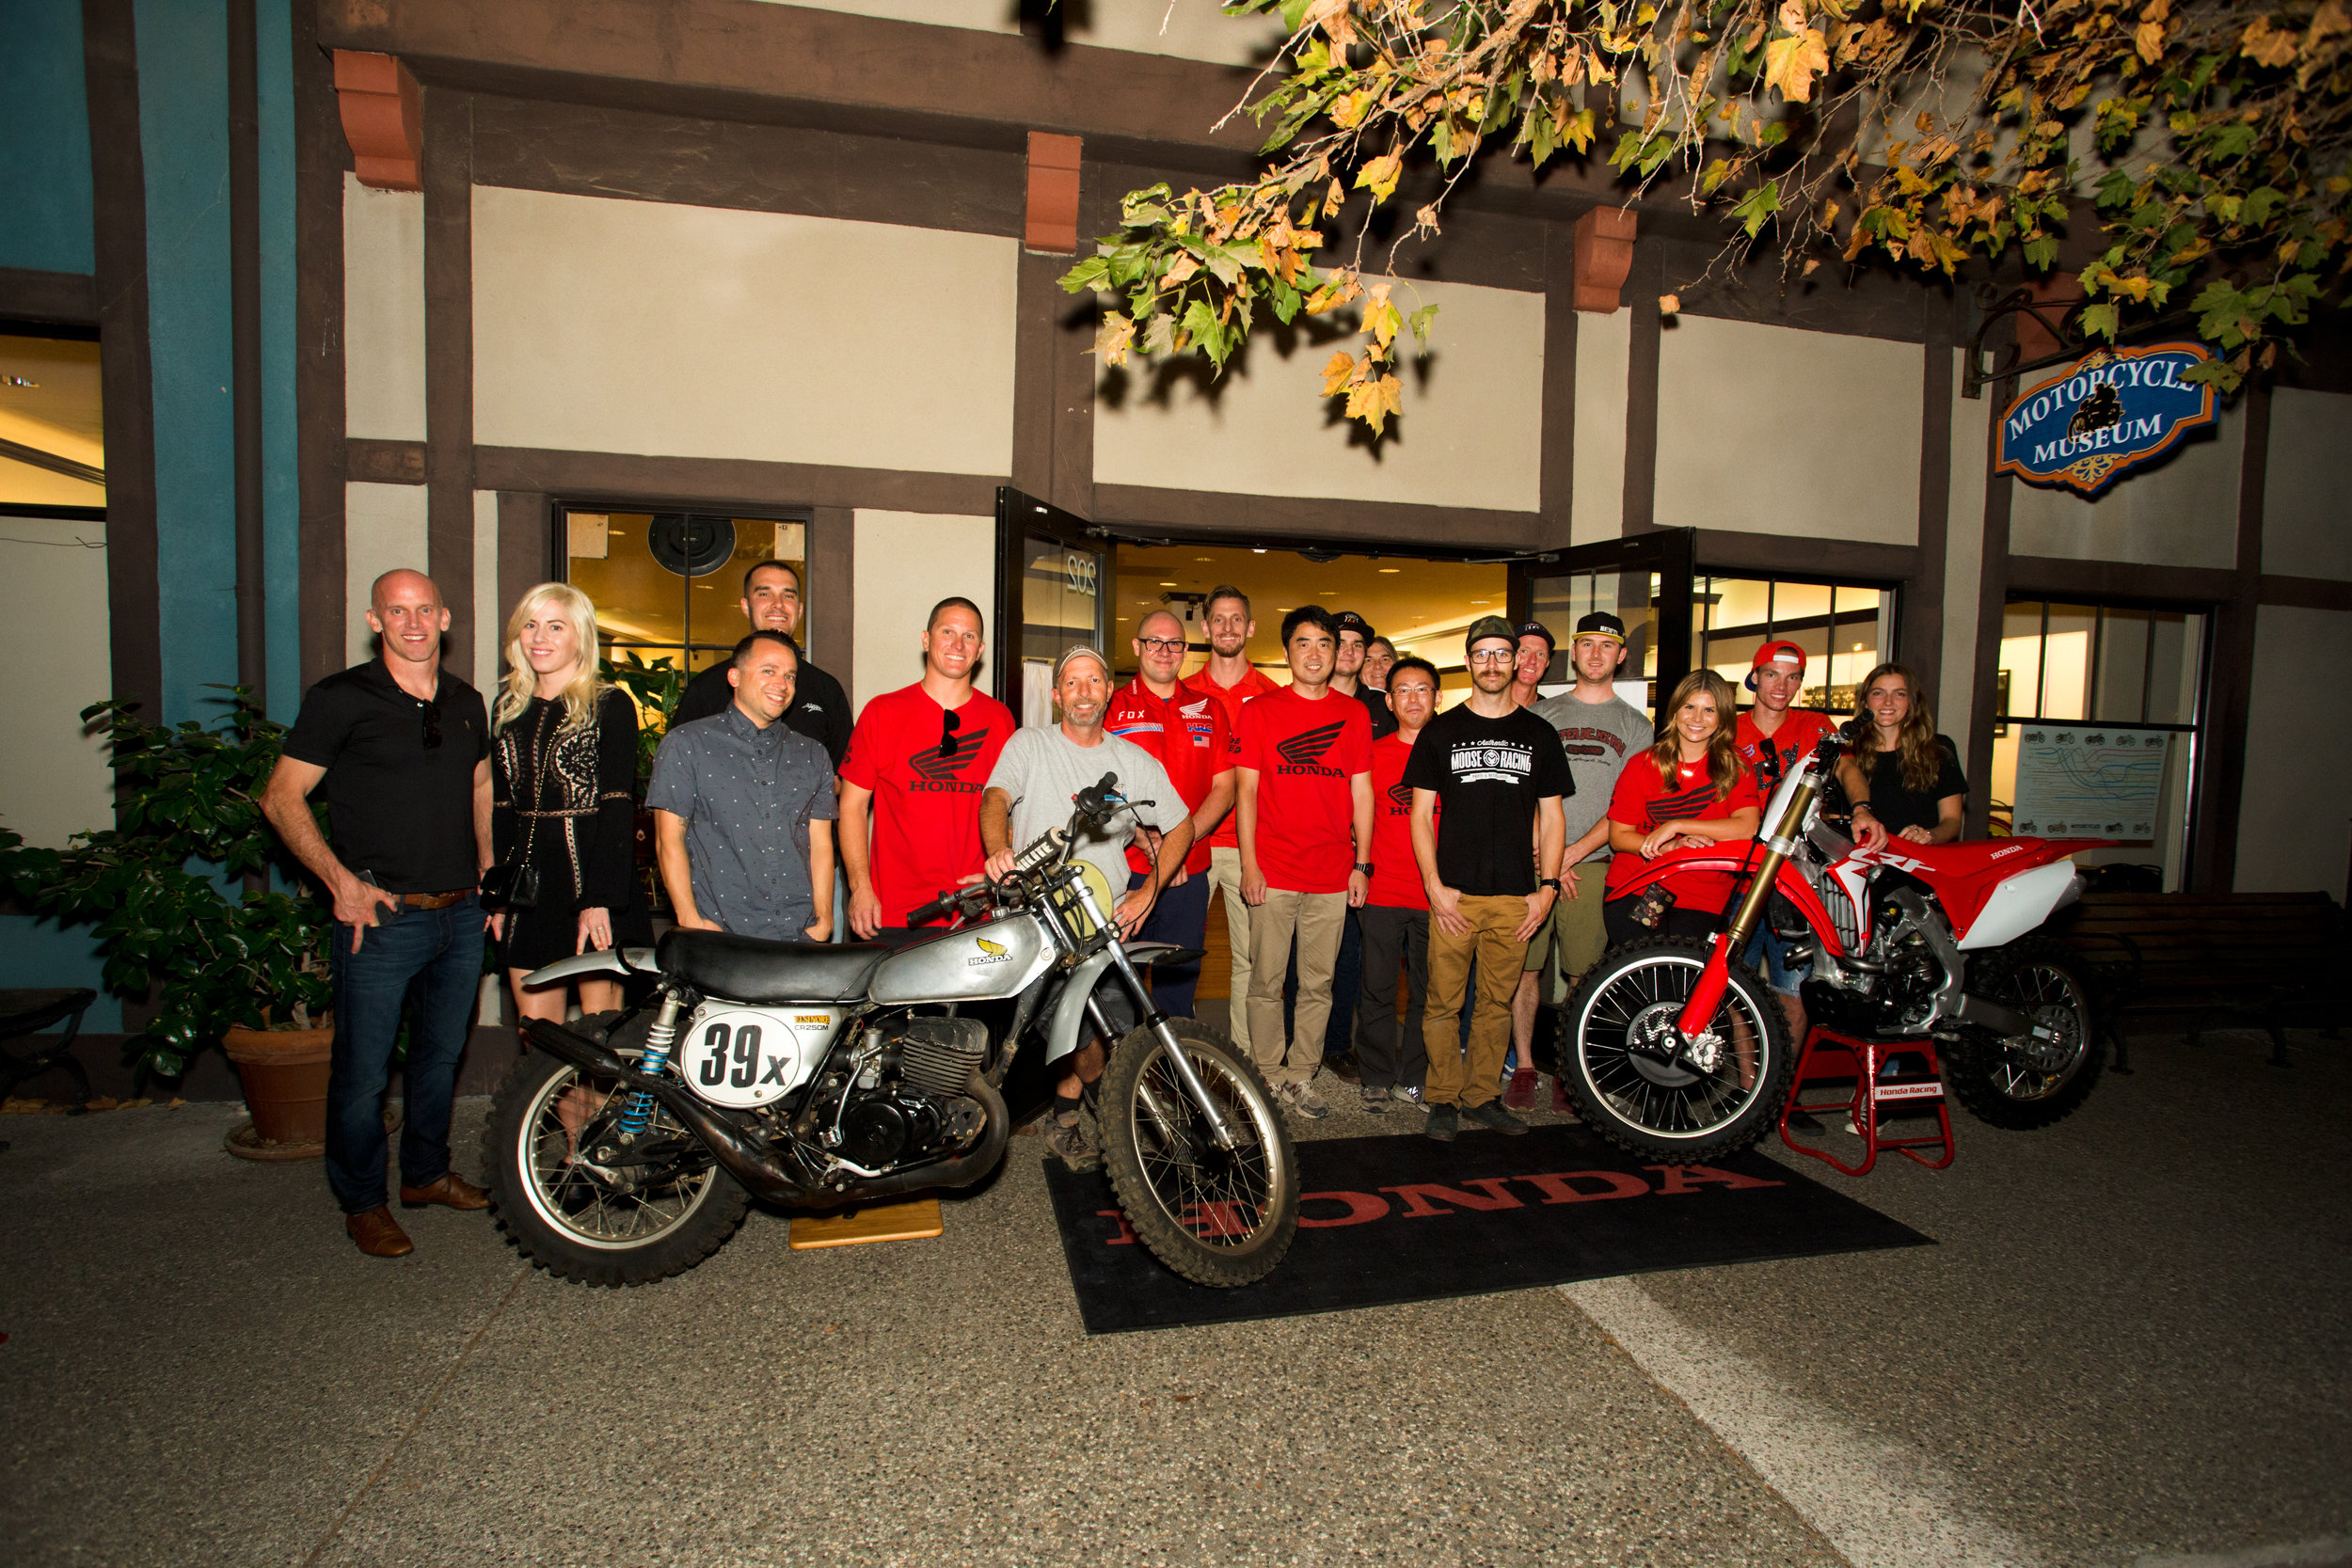 The icing on the cake was a field trip to the Solvang Vintage Motorcycle Museum, where the new CRF250R was displayed alongside Honda's original Elsinore 250cc motocrosser.  Image: HighRev Photography